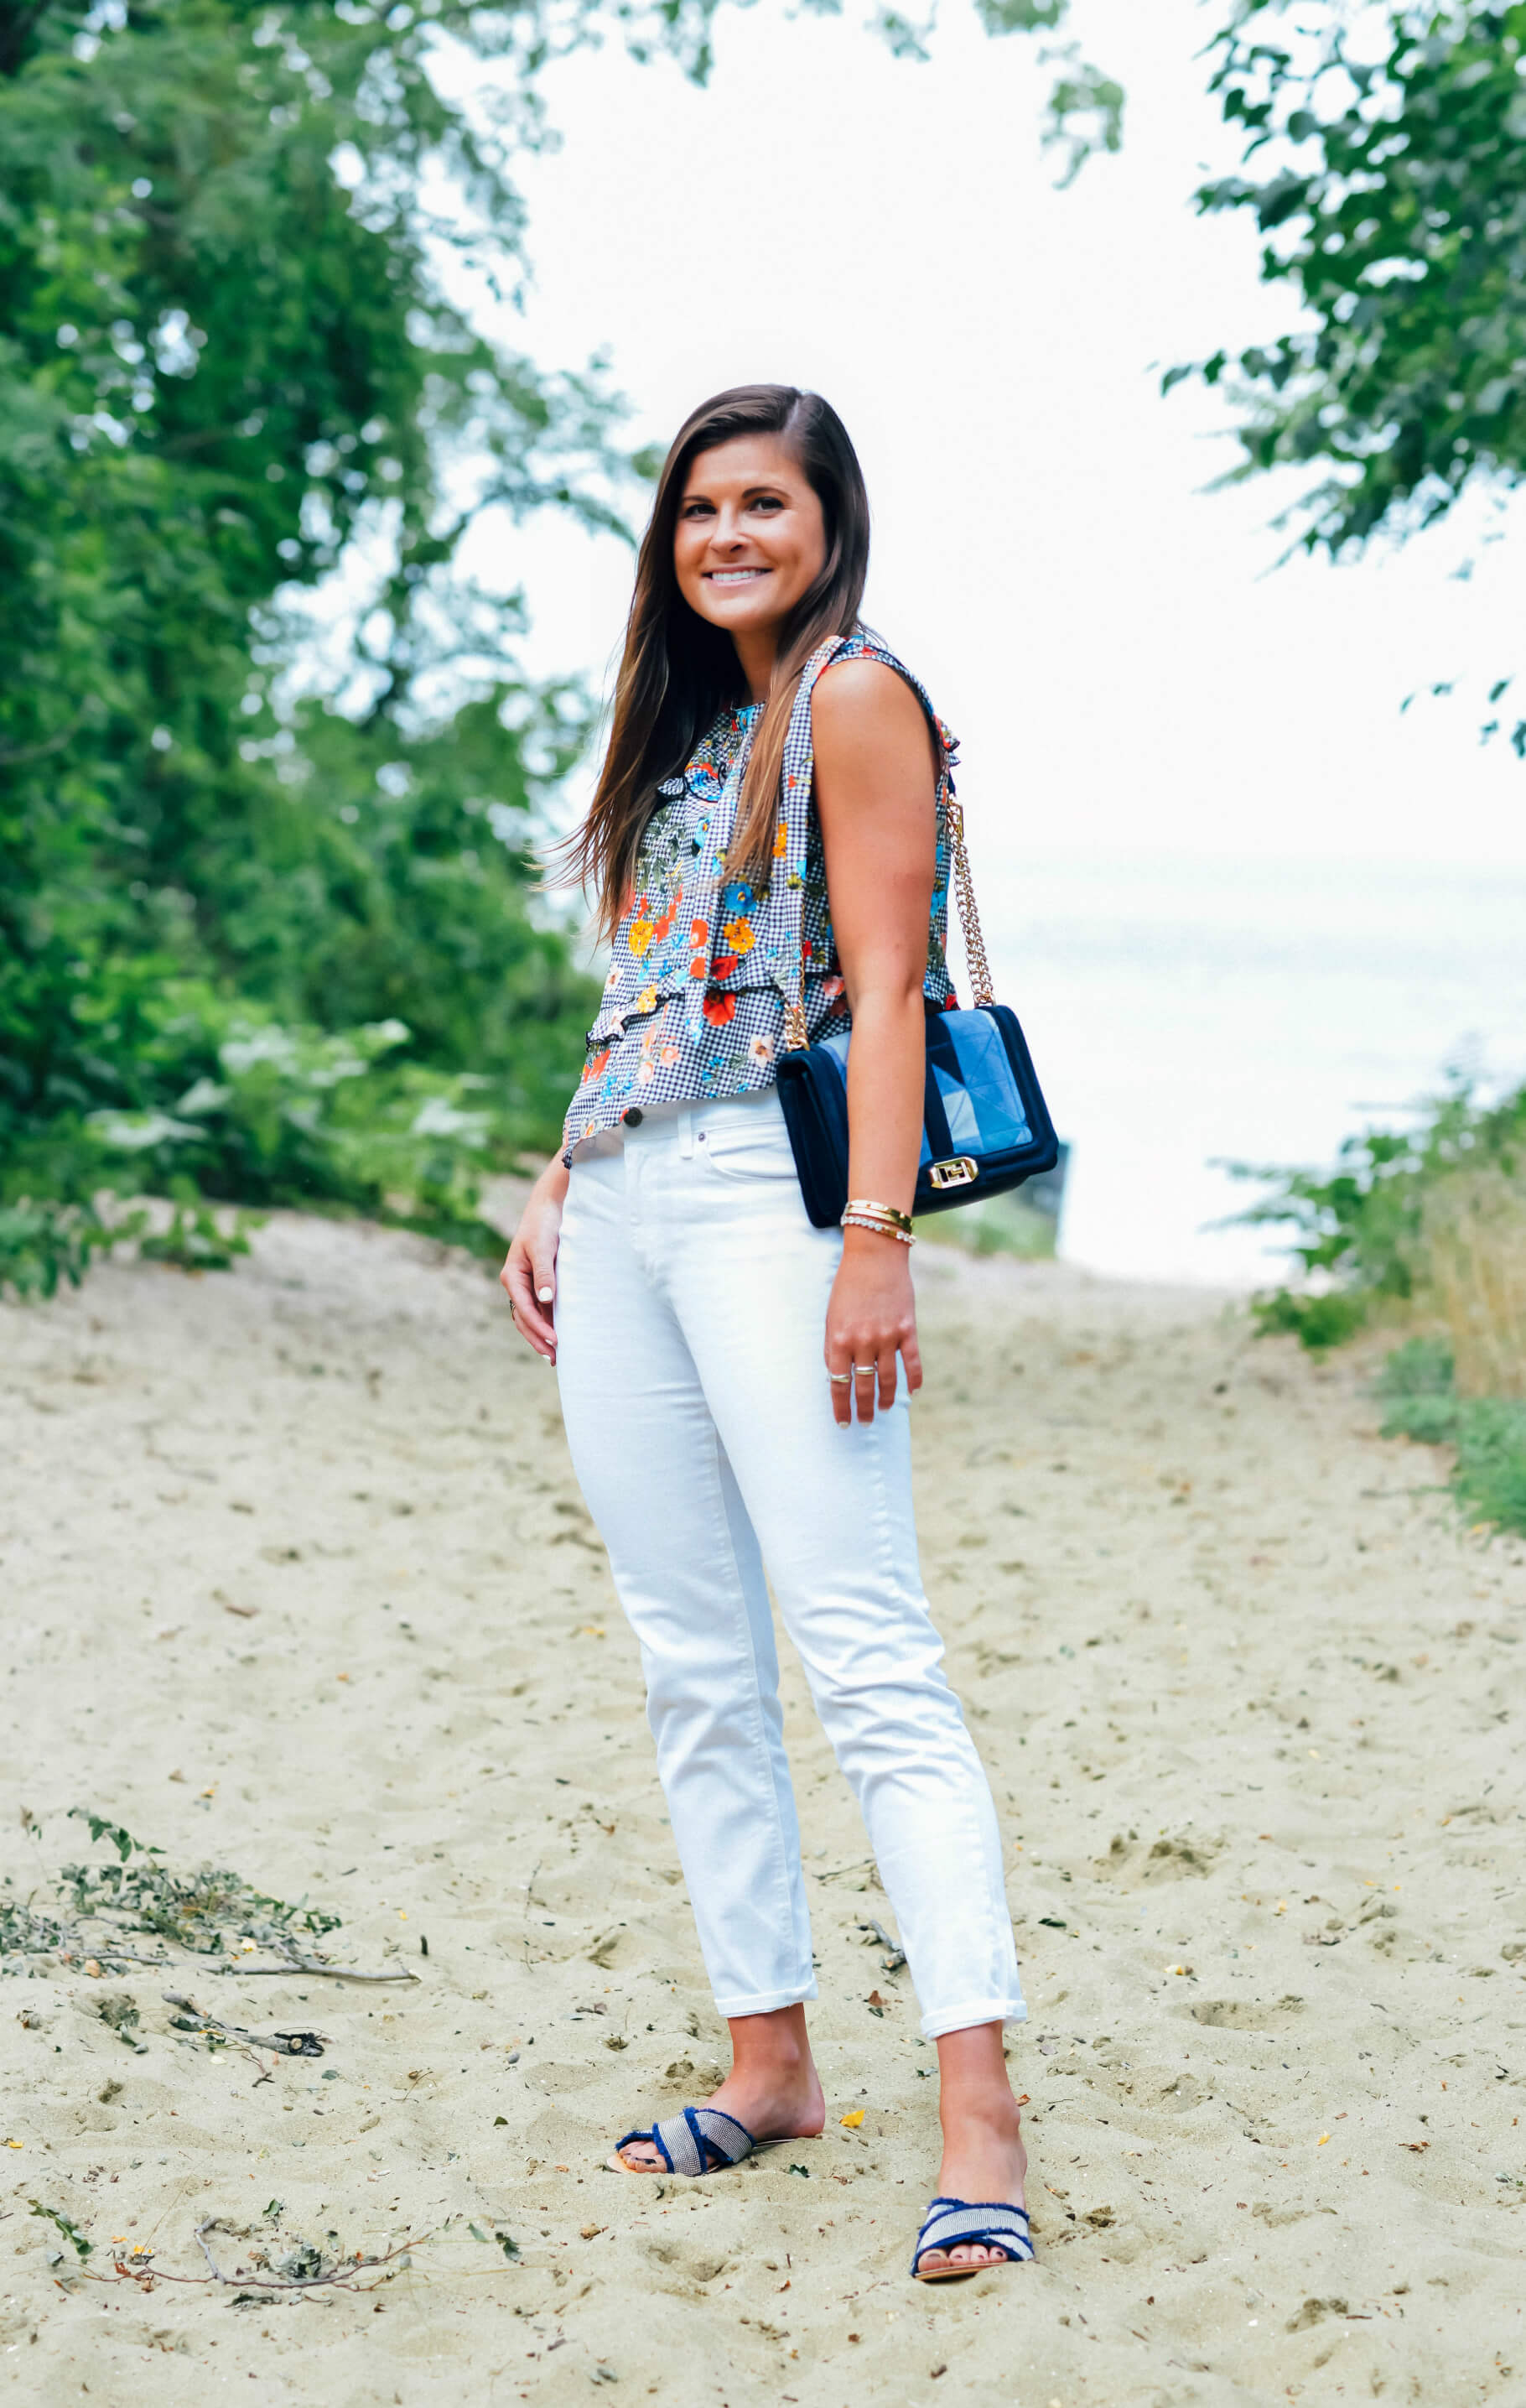 Gingham Floral Top, Denim Bag, Summer Outfit, White Jeans Outfit, Tilden of To Be Bright